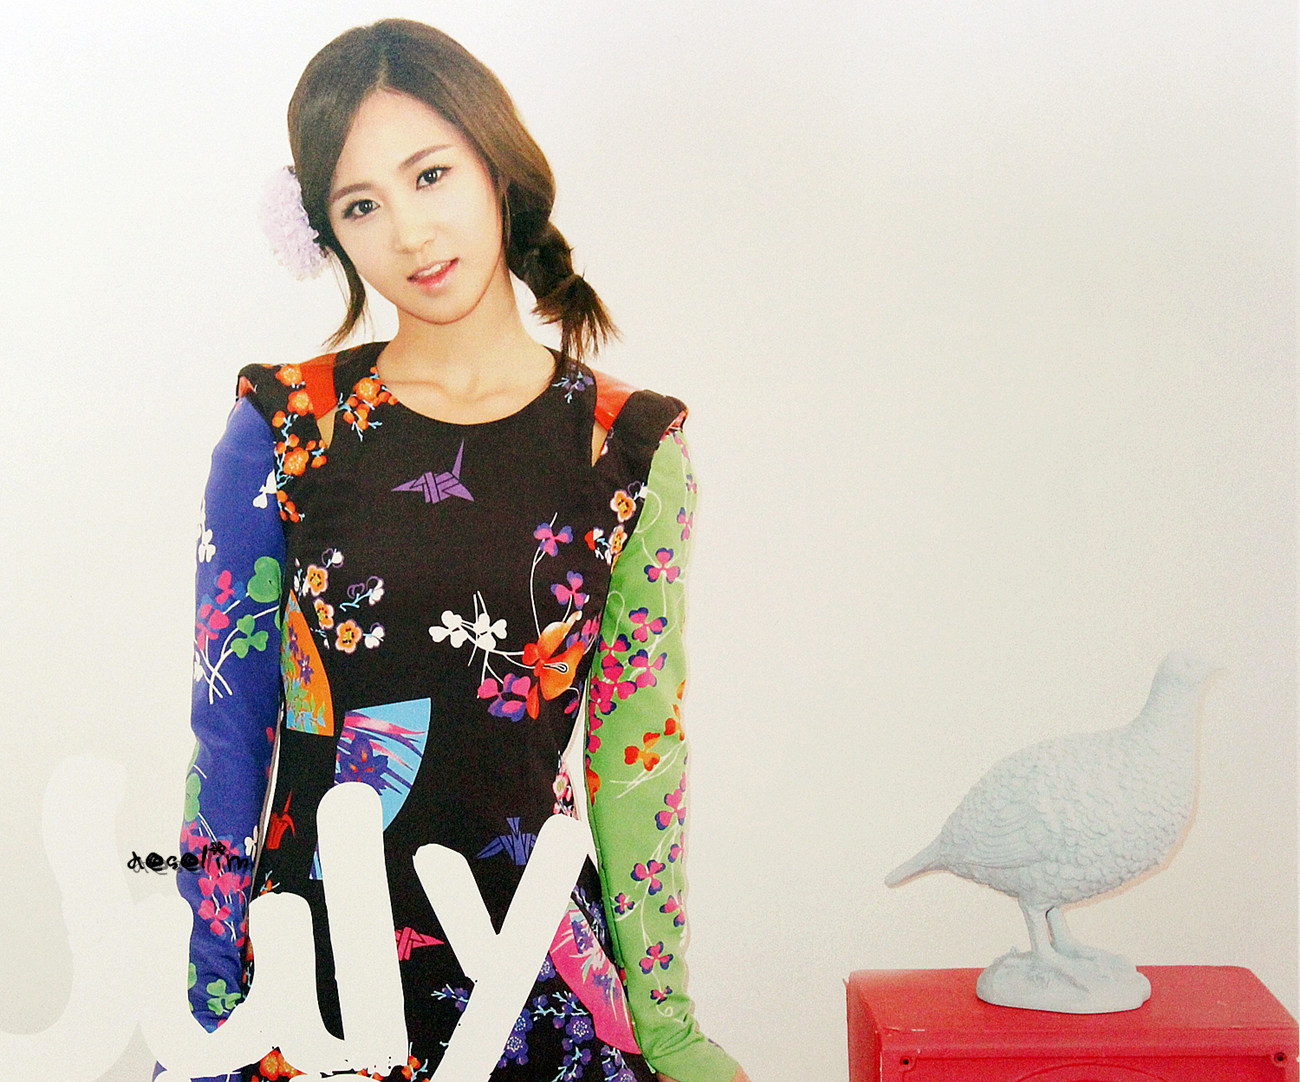 Yuri @ Girls' Generation 2012 Calendar Scans HD